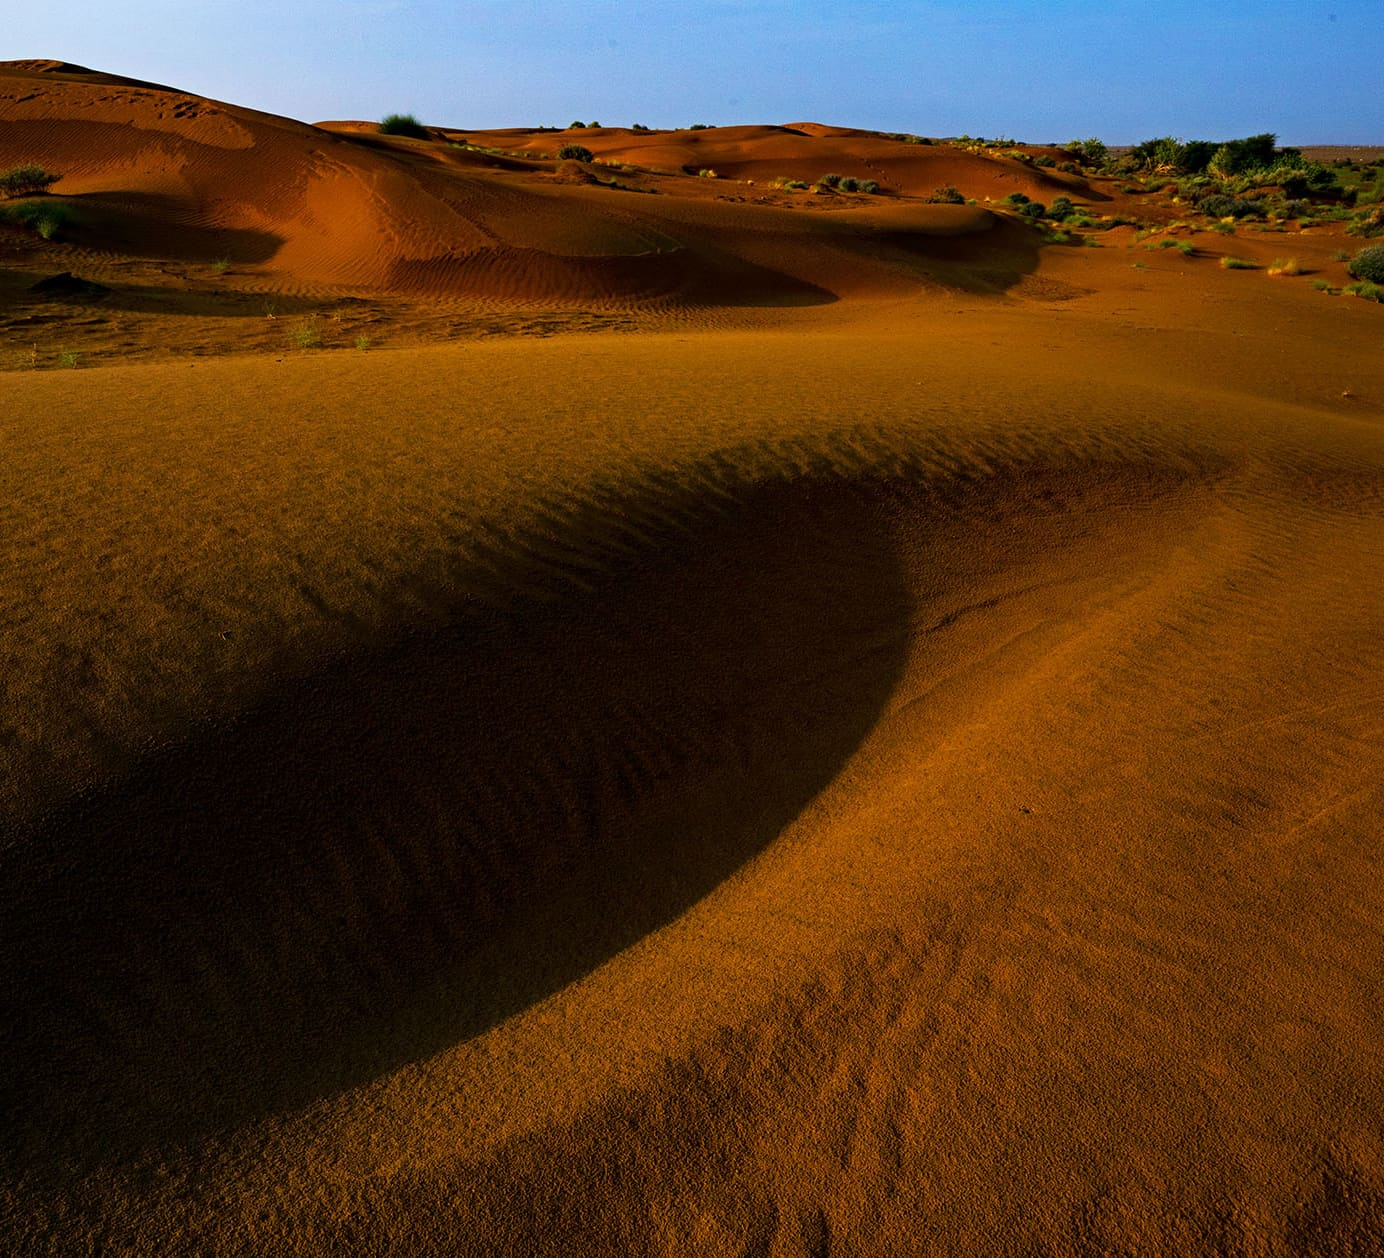 Desert National Park: The Abundant Life of the Sand and Scrubs